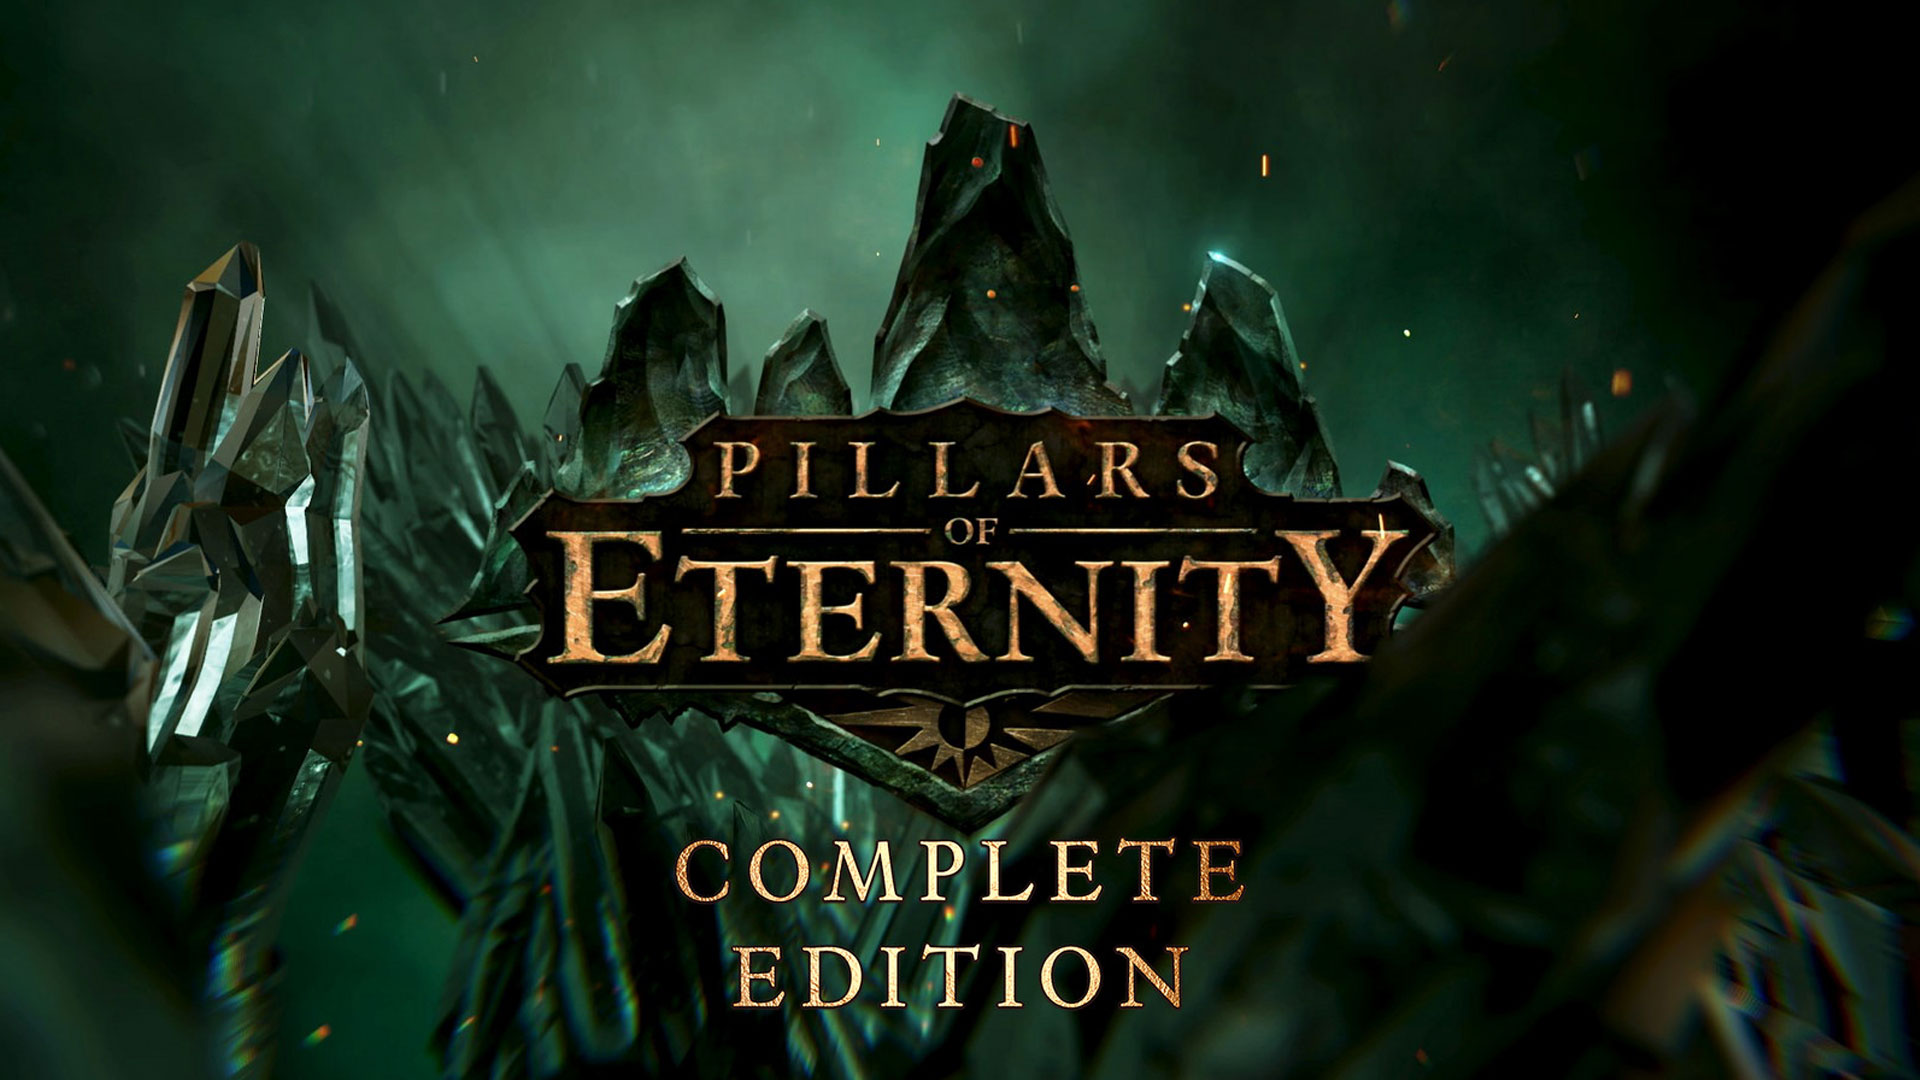 Pillars of Eternity: Complete Edition brings all DLC to Switch in August